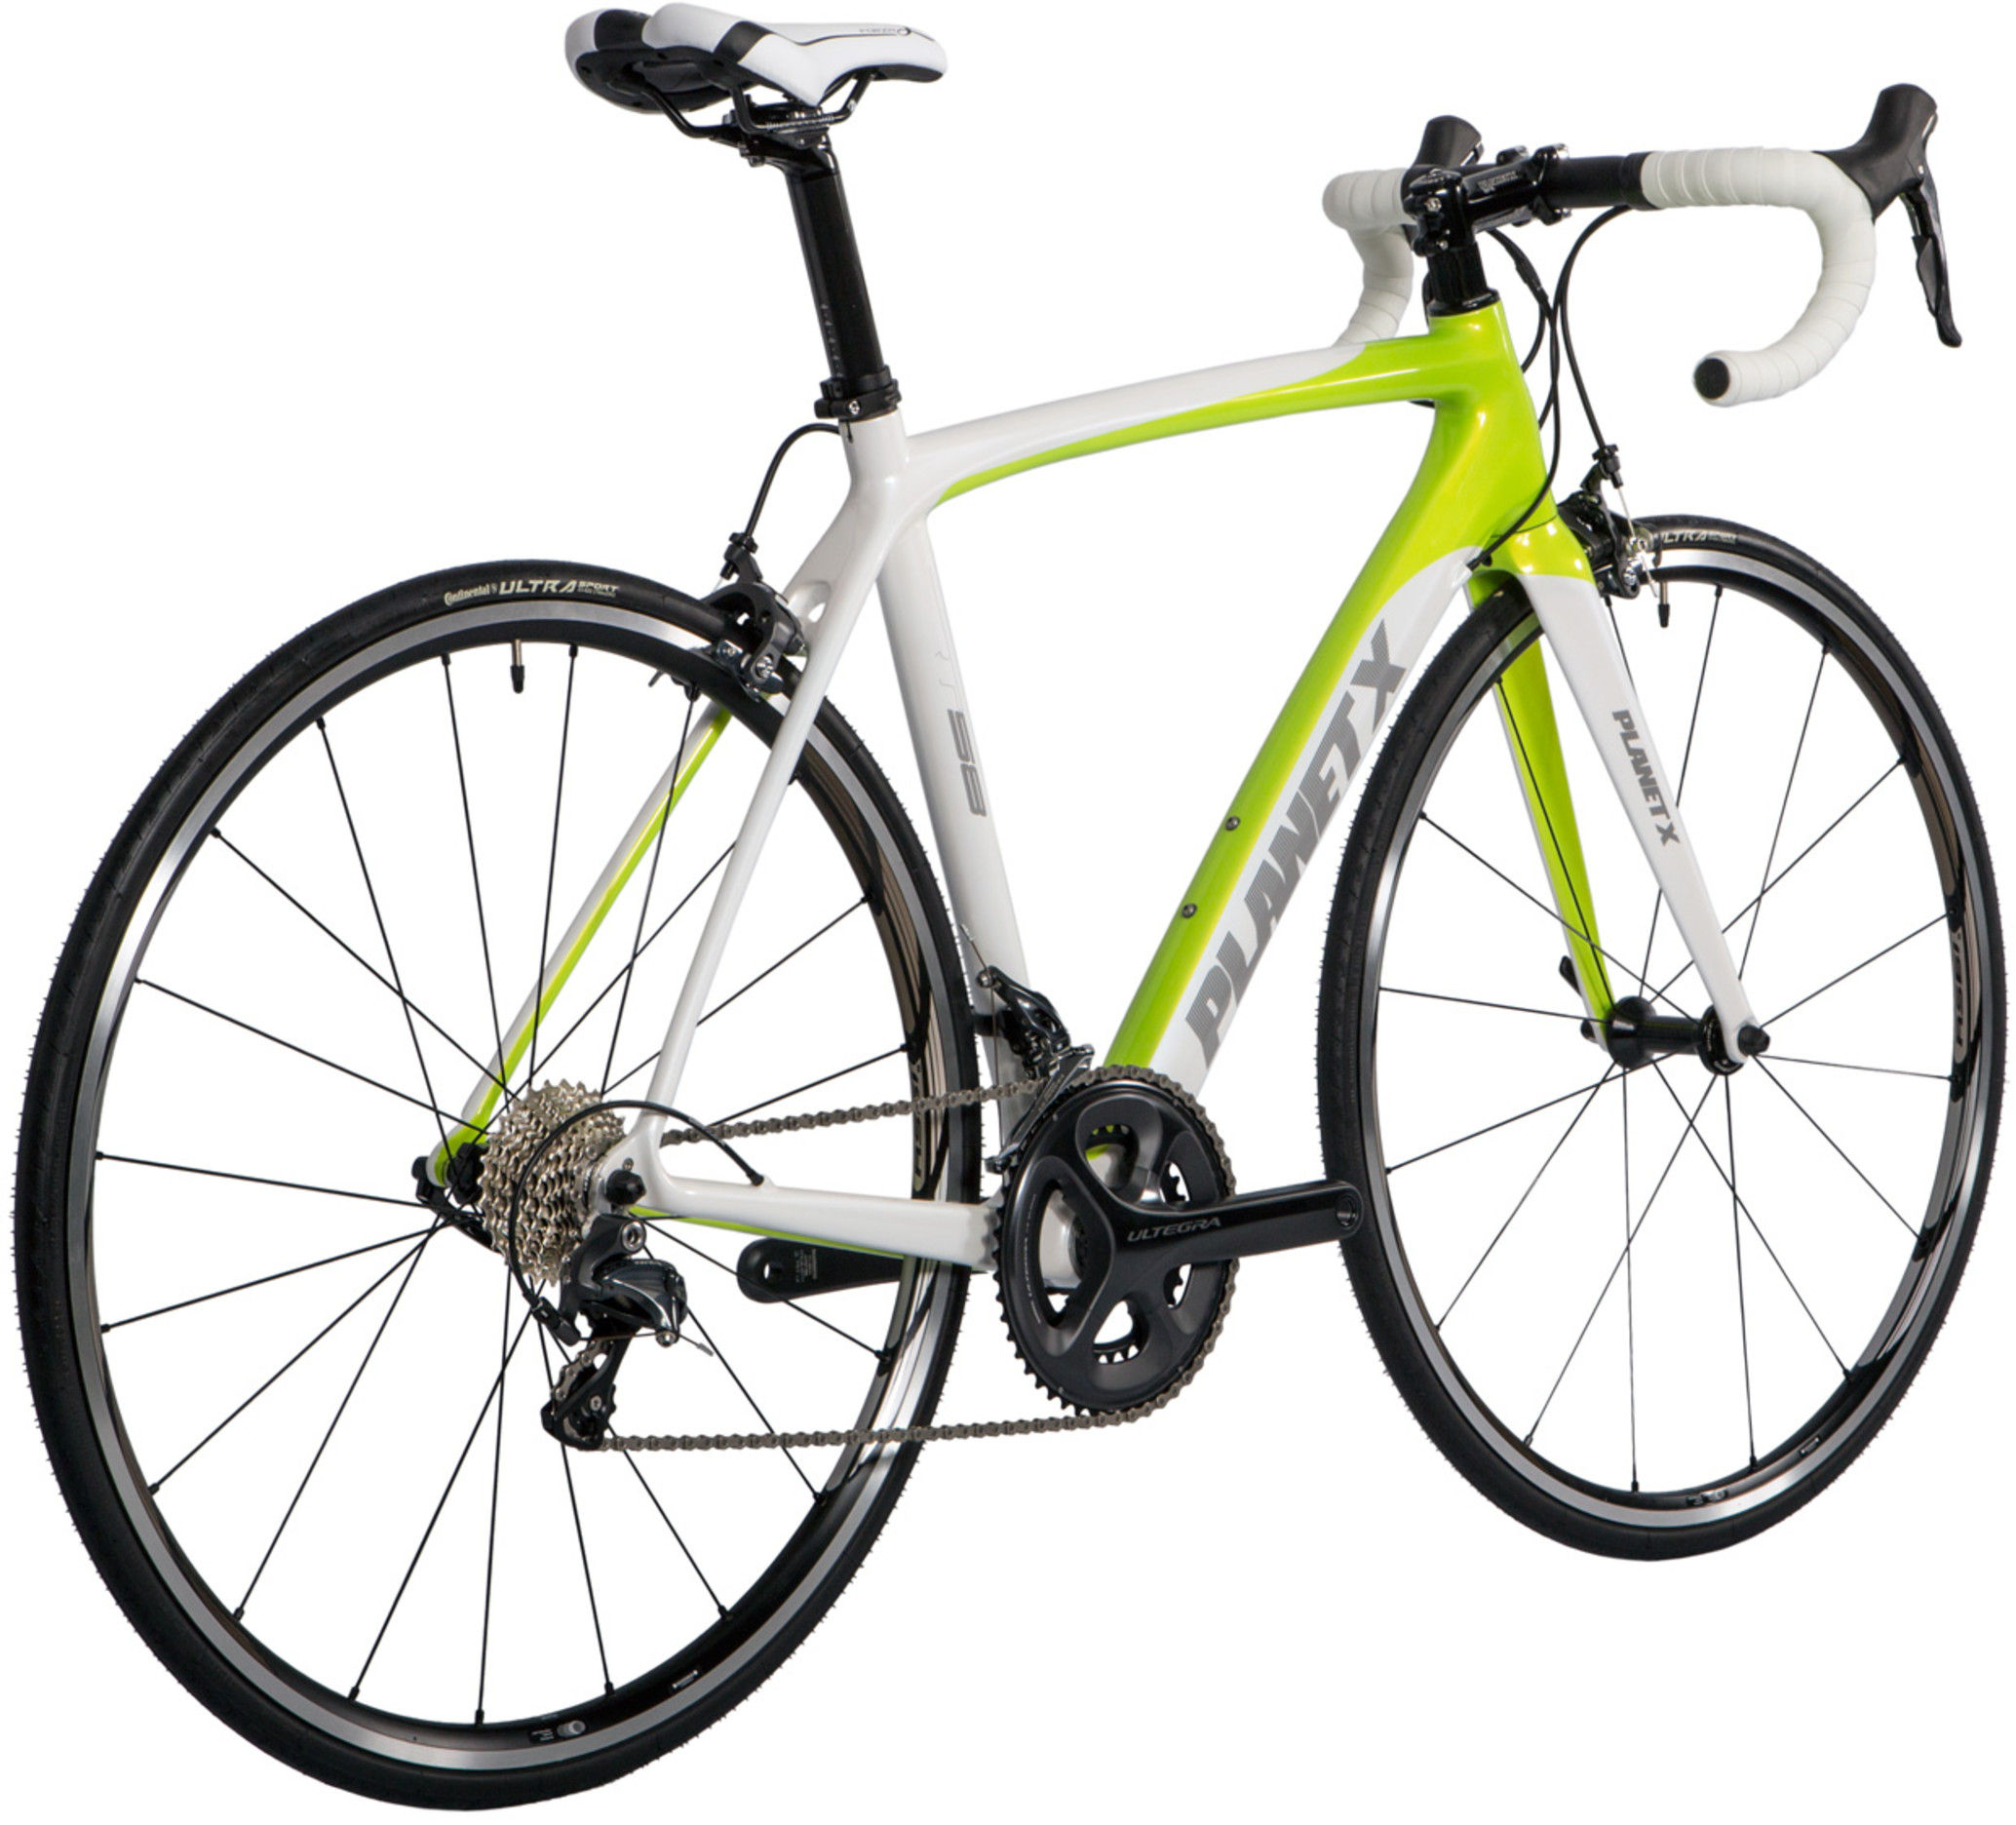 Planet X Rt 58 Shimano Ultegra 6800 Womens 2014 Review